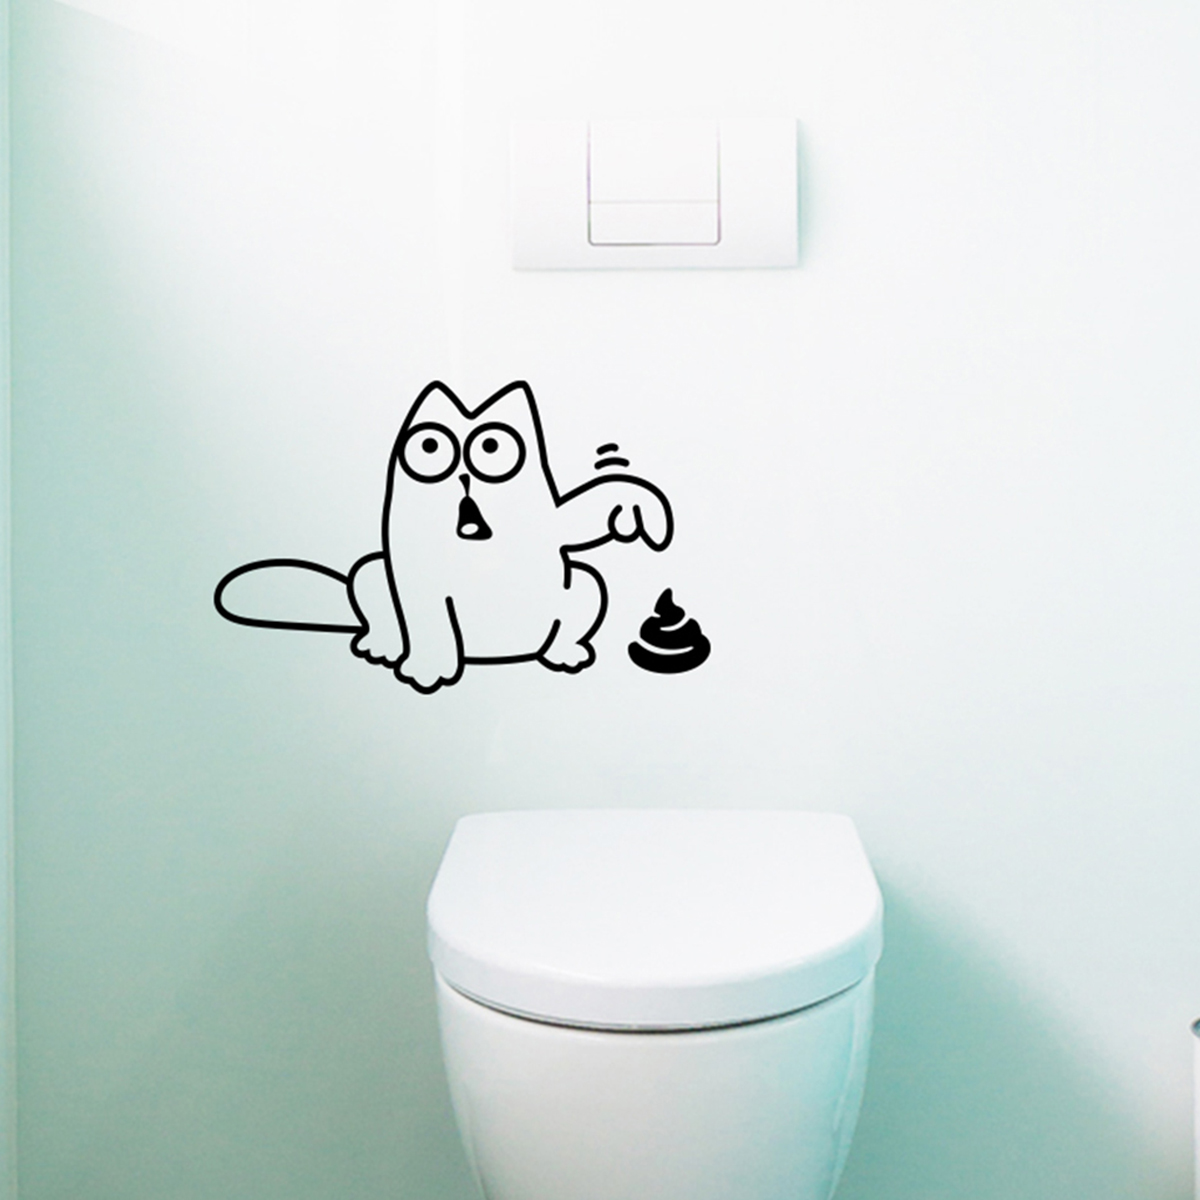 Stickers Abattants Wc Sticker Abattant Toilettes Ambiance Sticker